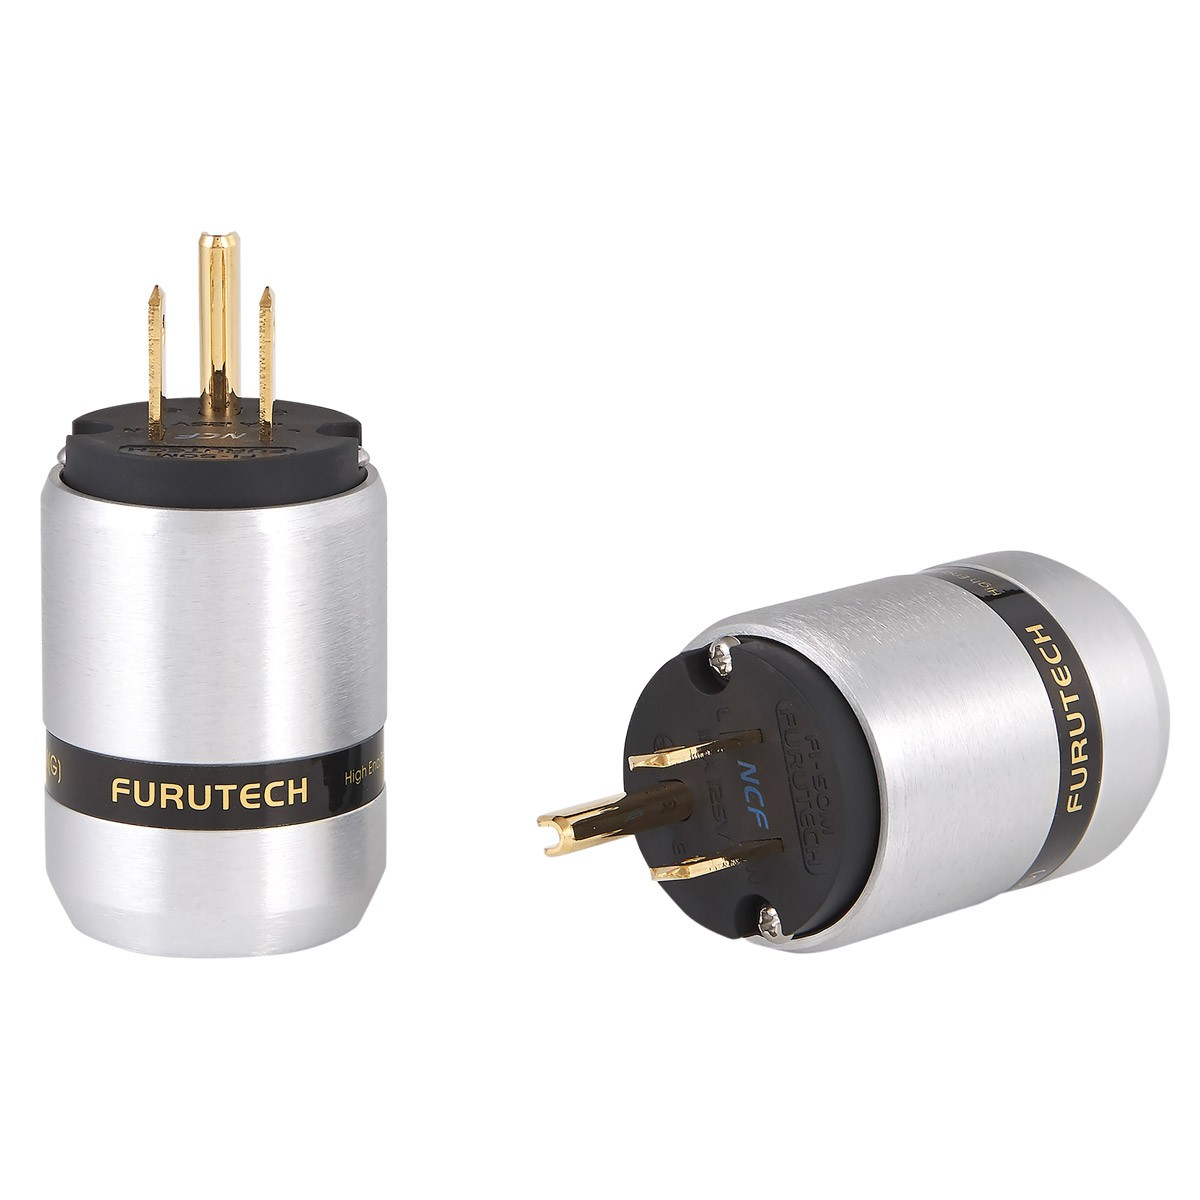 FURUTECH FI-46M NCF (G) Gold Plated Copper USA NEMA 5-15 Connector Alpha Treatment NCF Ø20mm